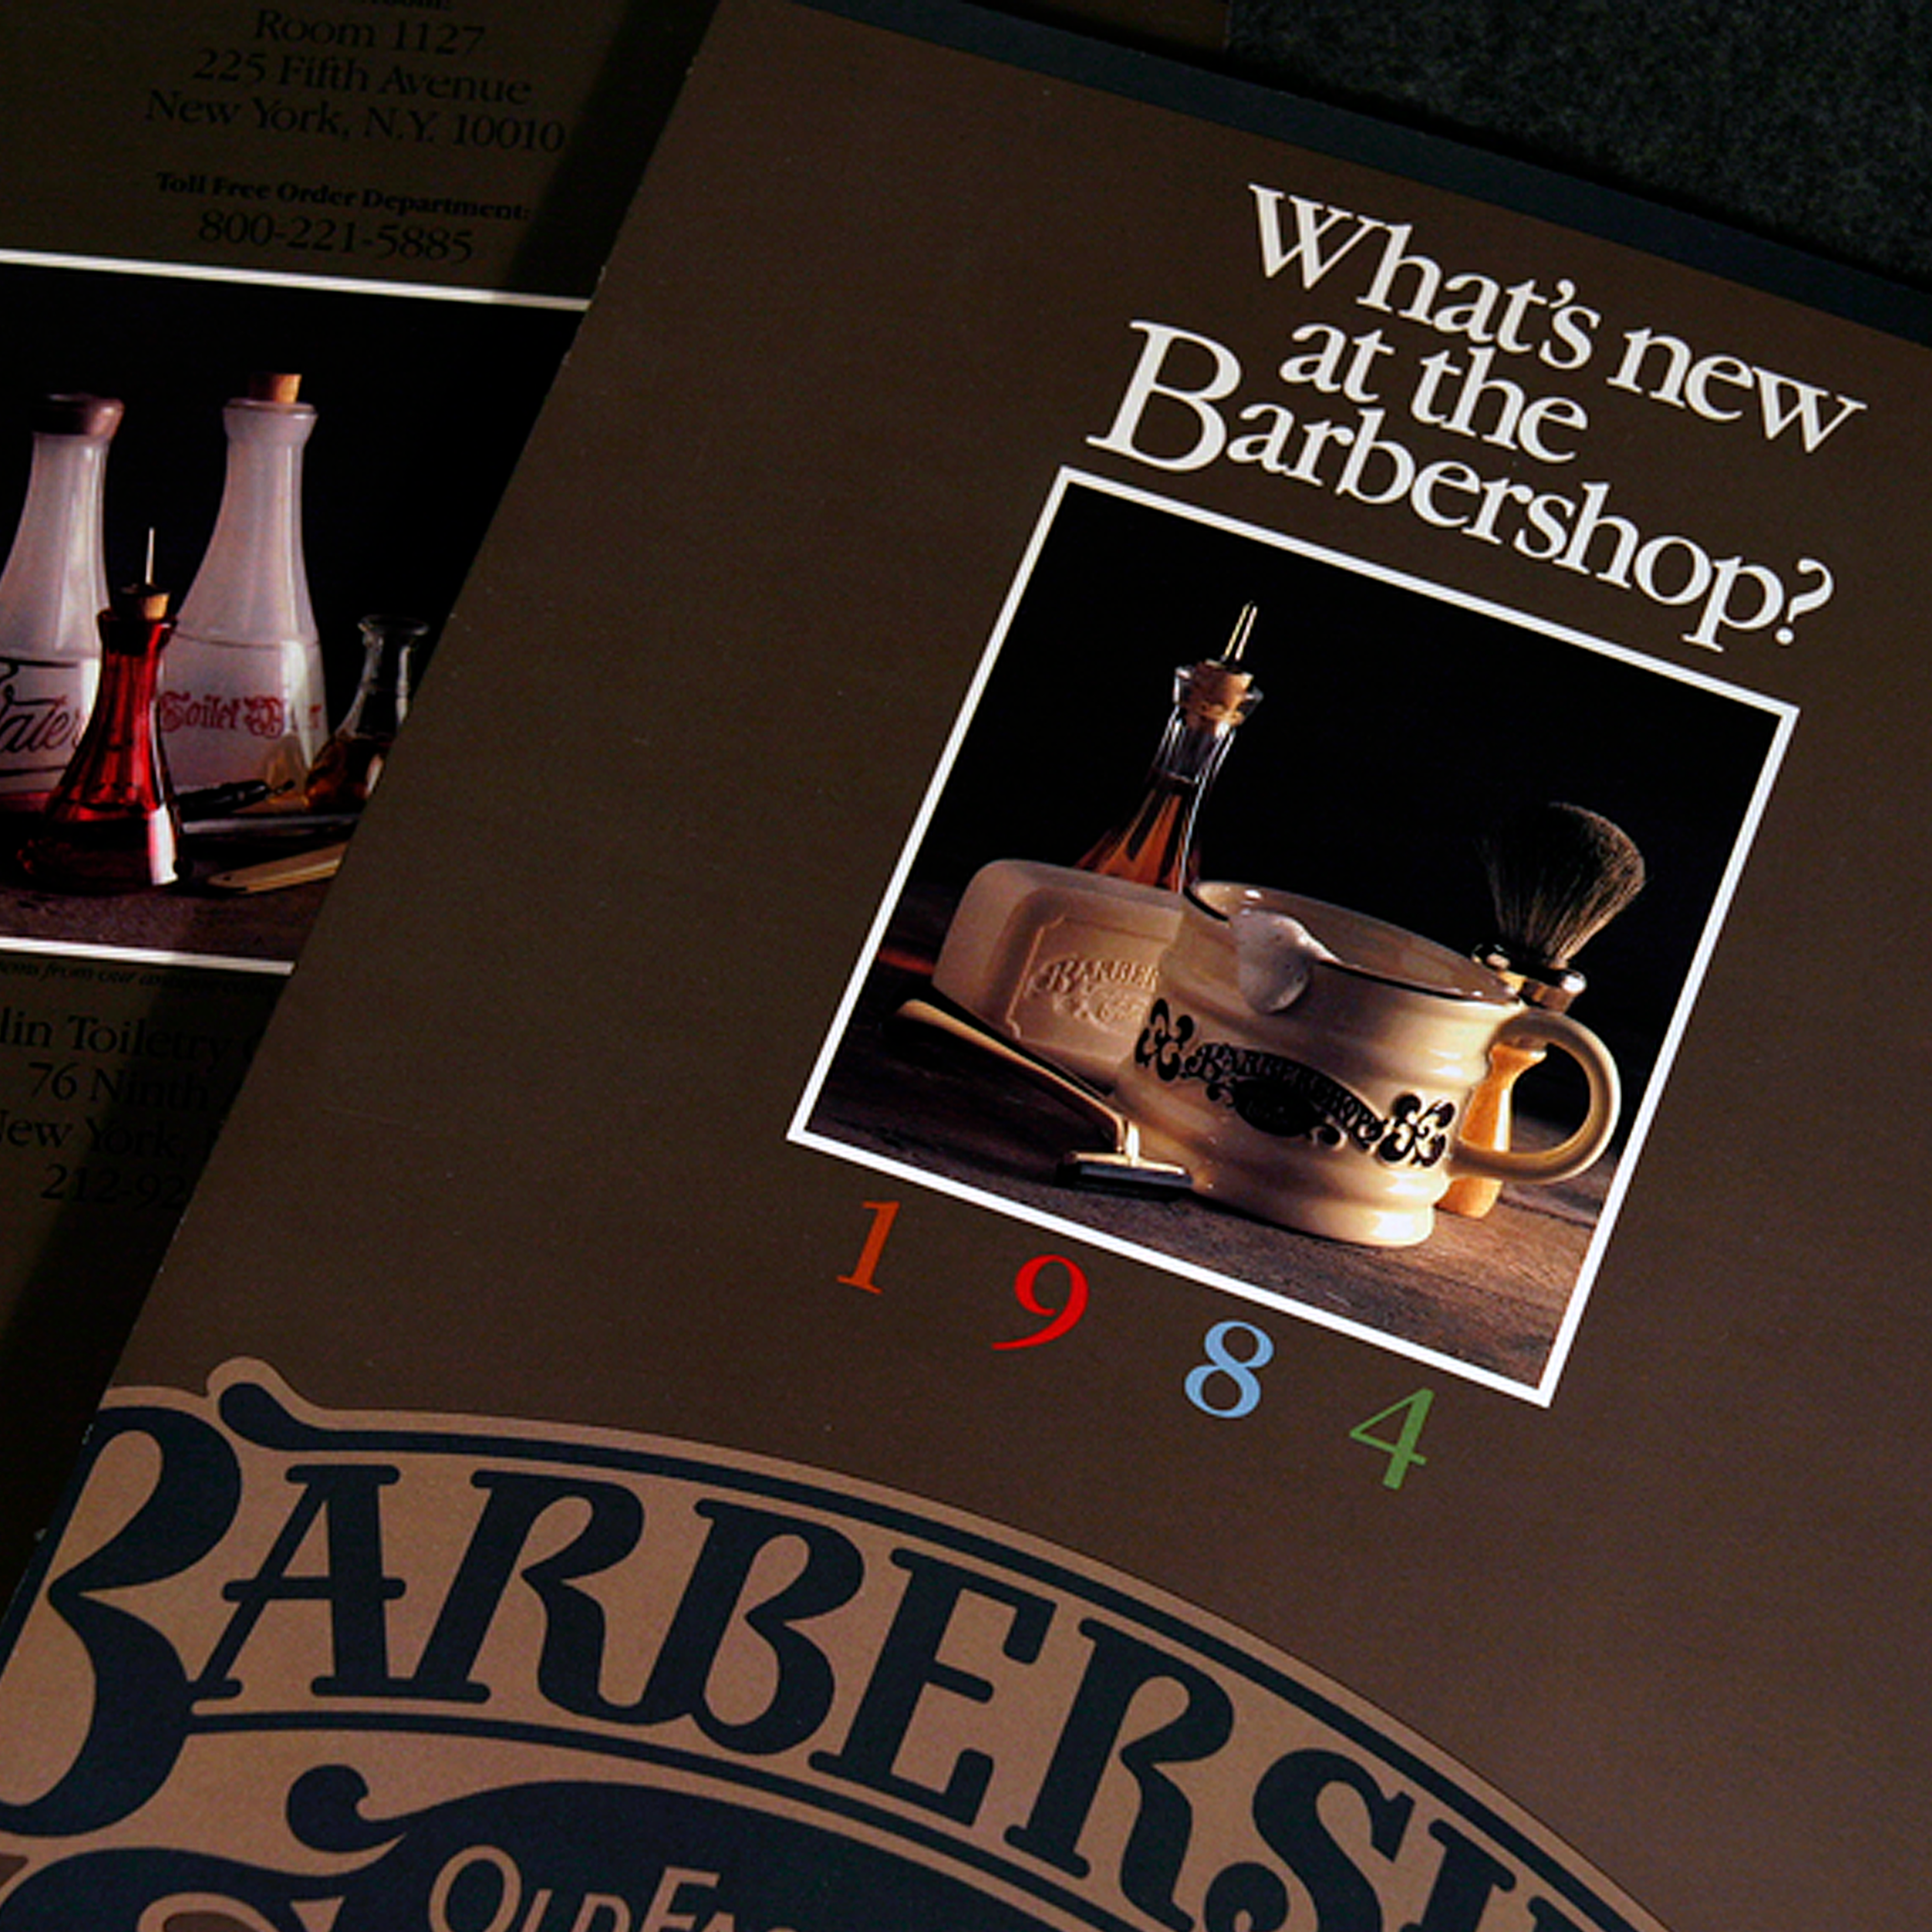 Barbershop_cover_2x.png